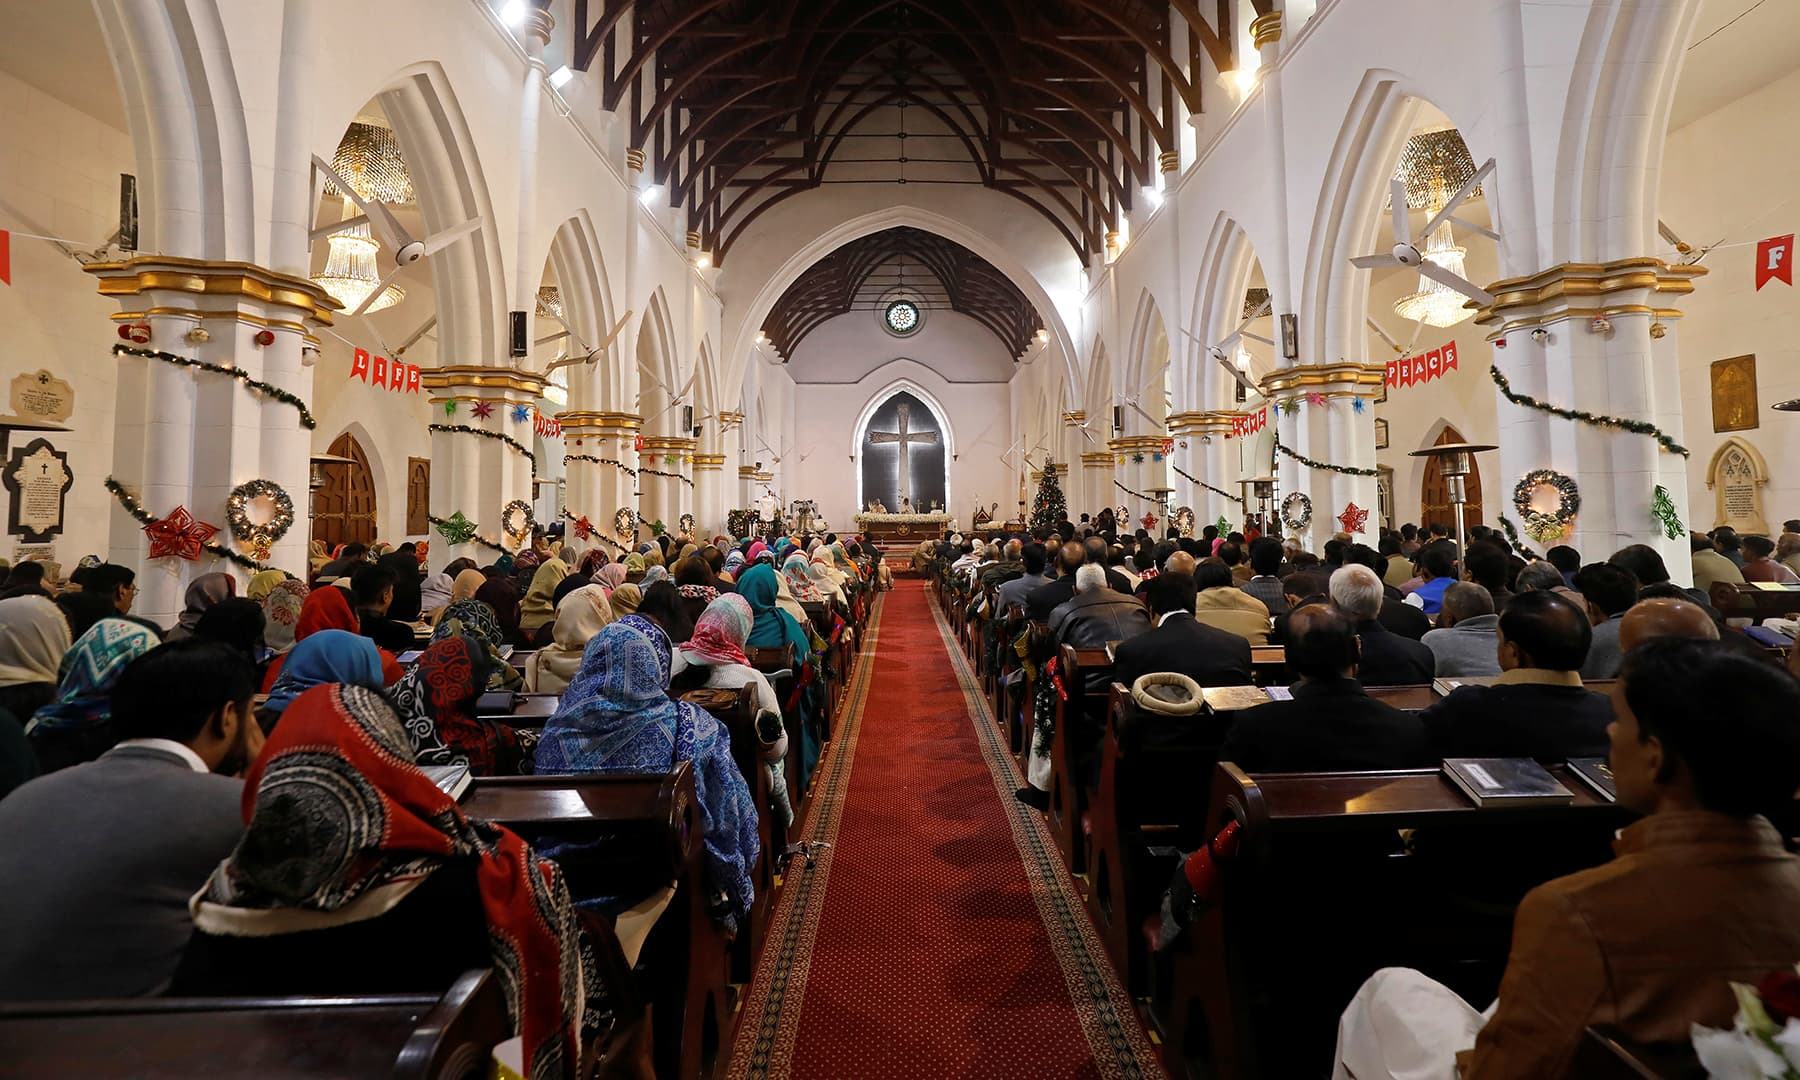 People attend a Christmas Day service at the St. John's Cathedral in Peshawar. — Reuters